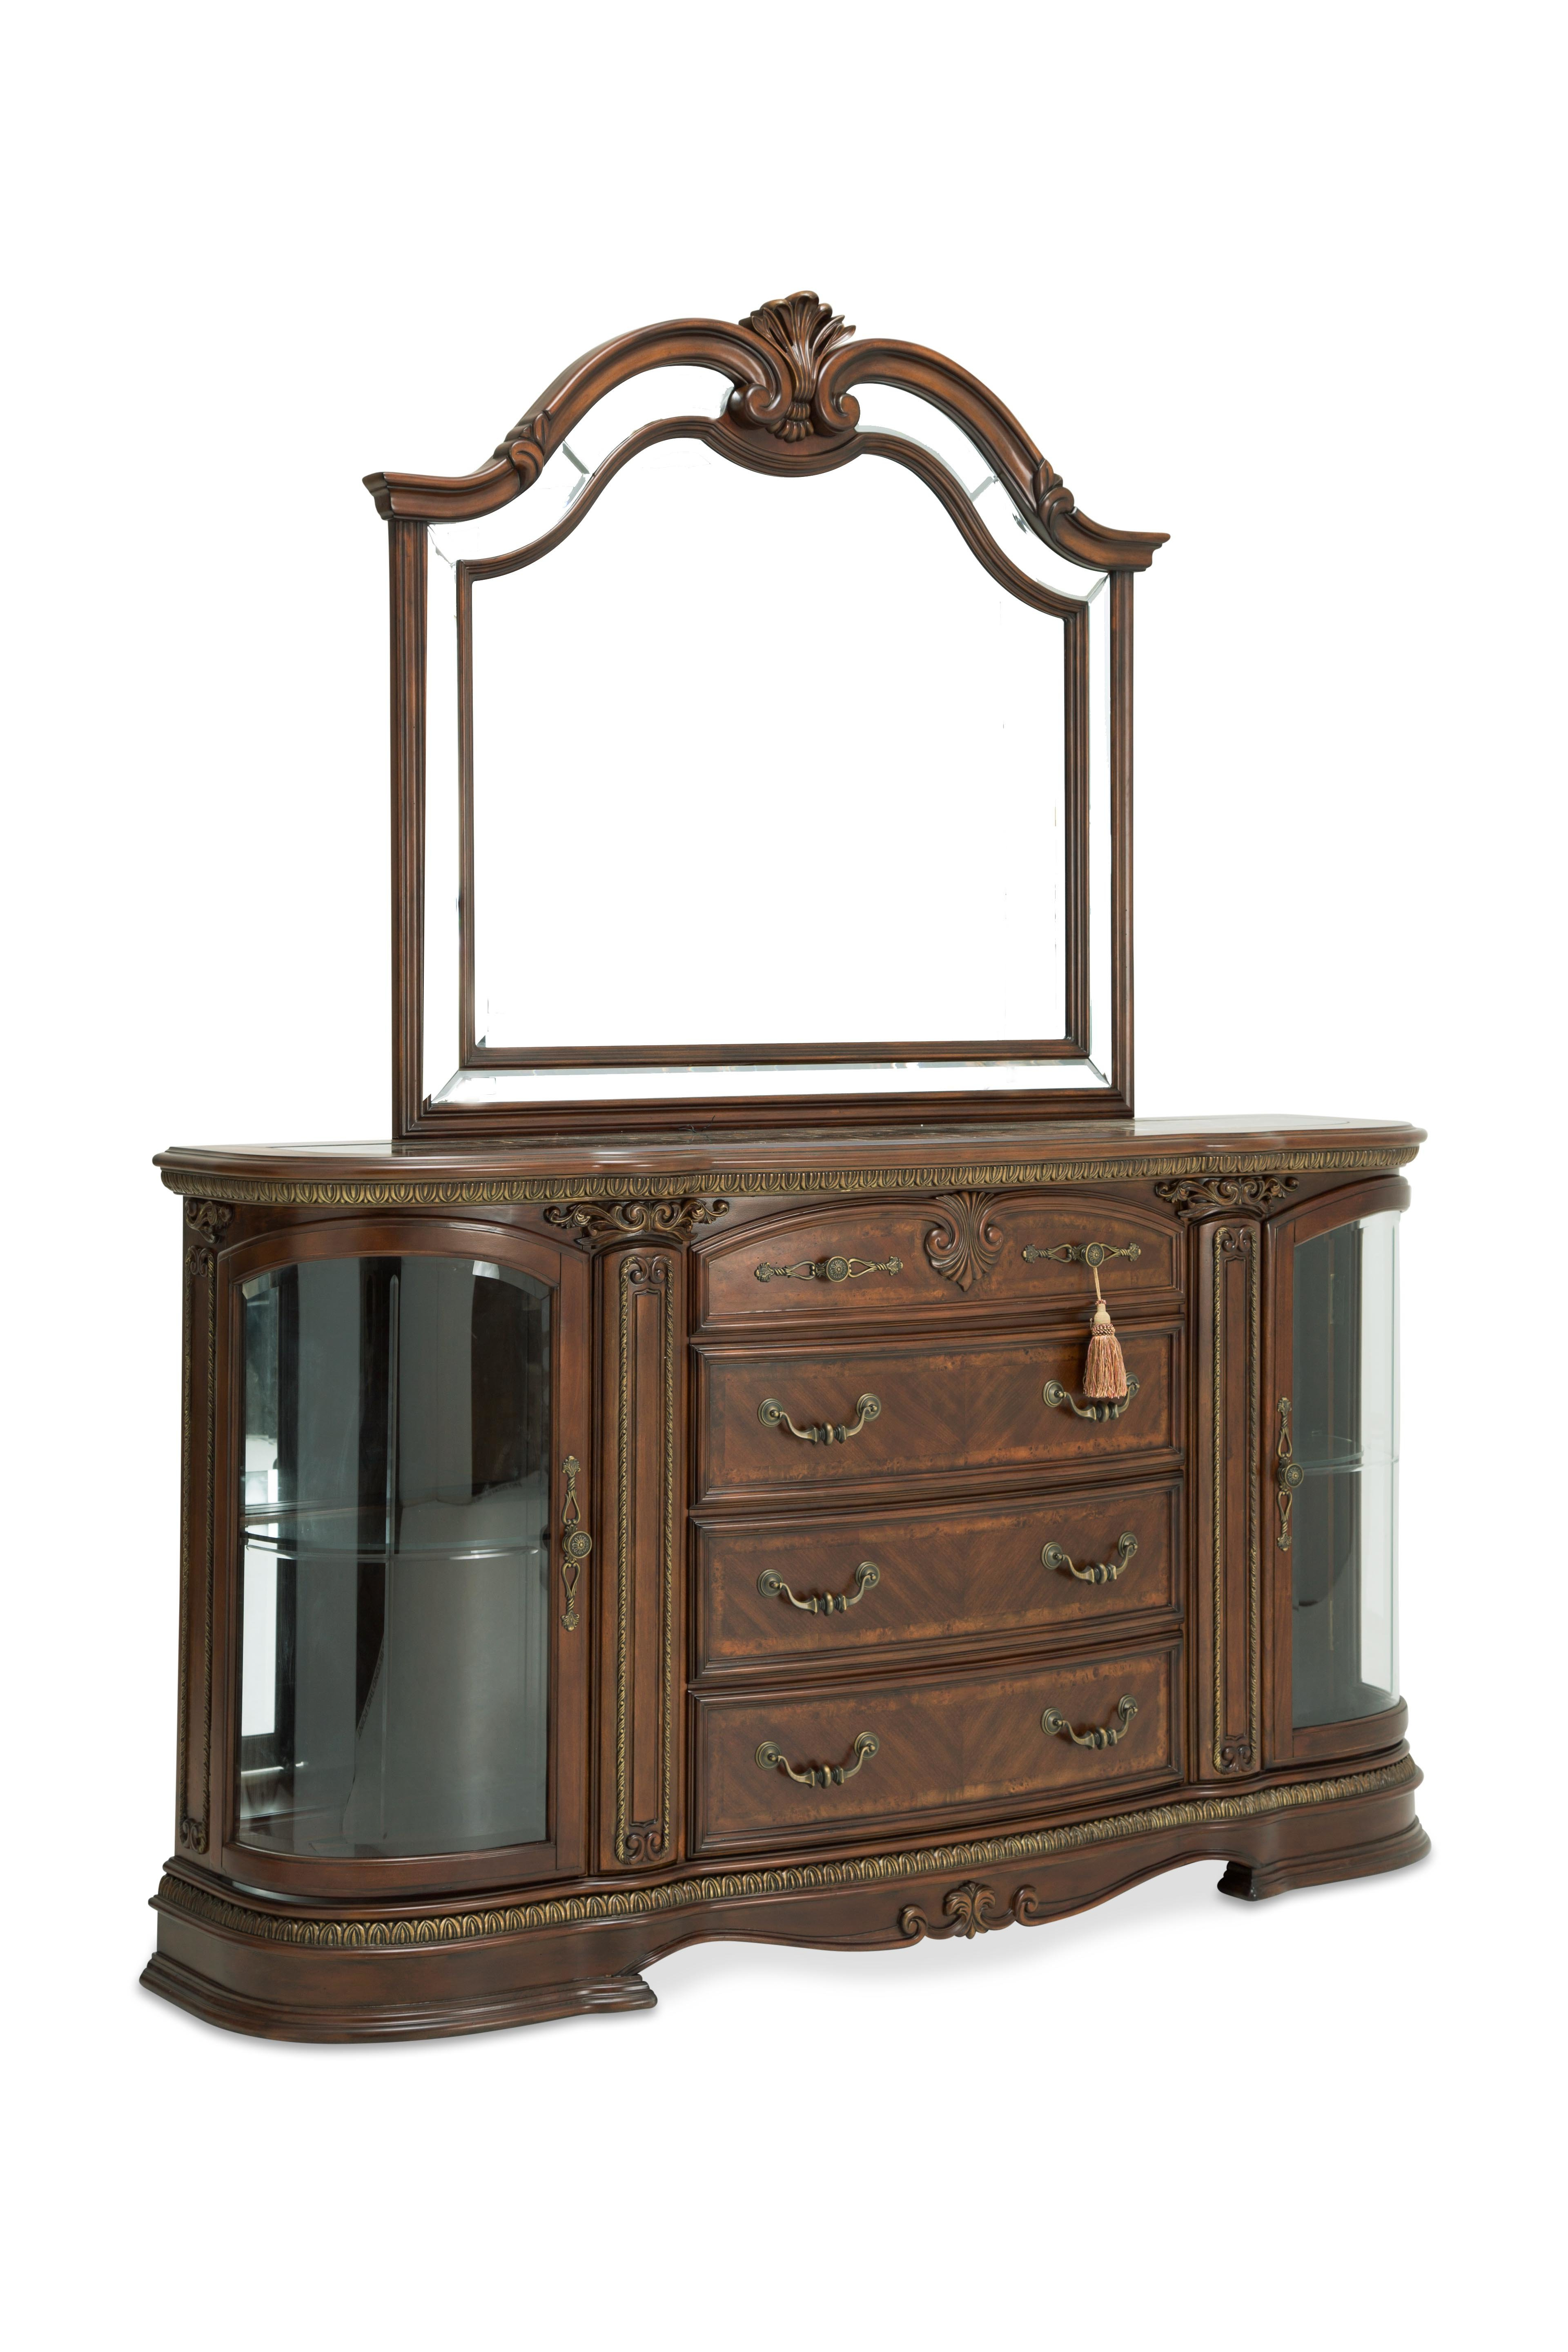 60 Inch Buffet Server | Wayfair Intended For Chaffins Sideboards (Gallery 13 of 20)